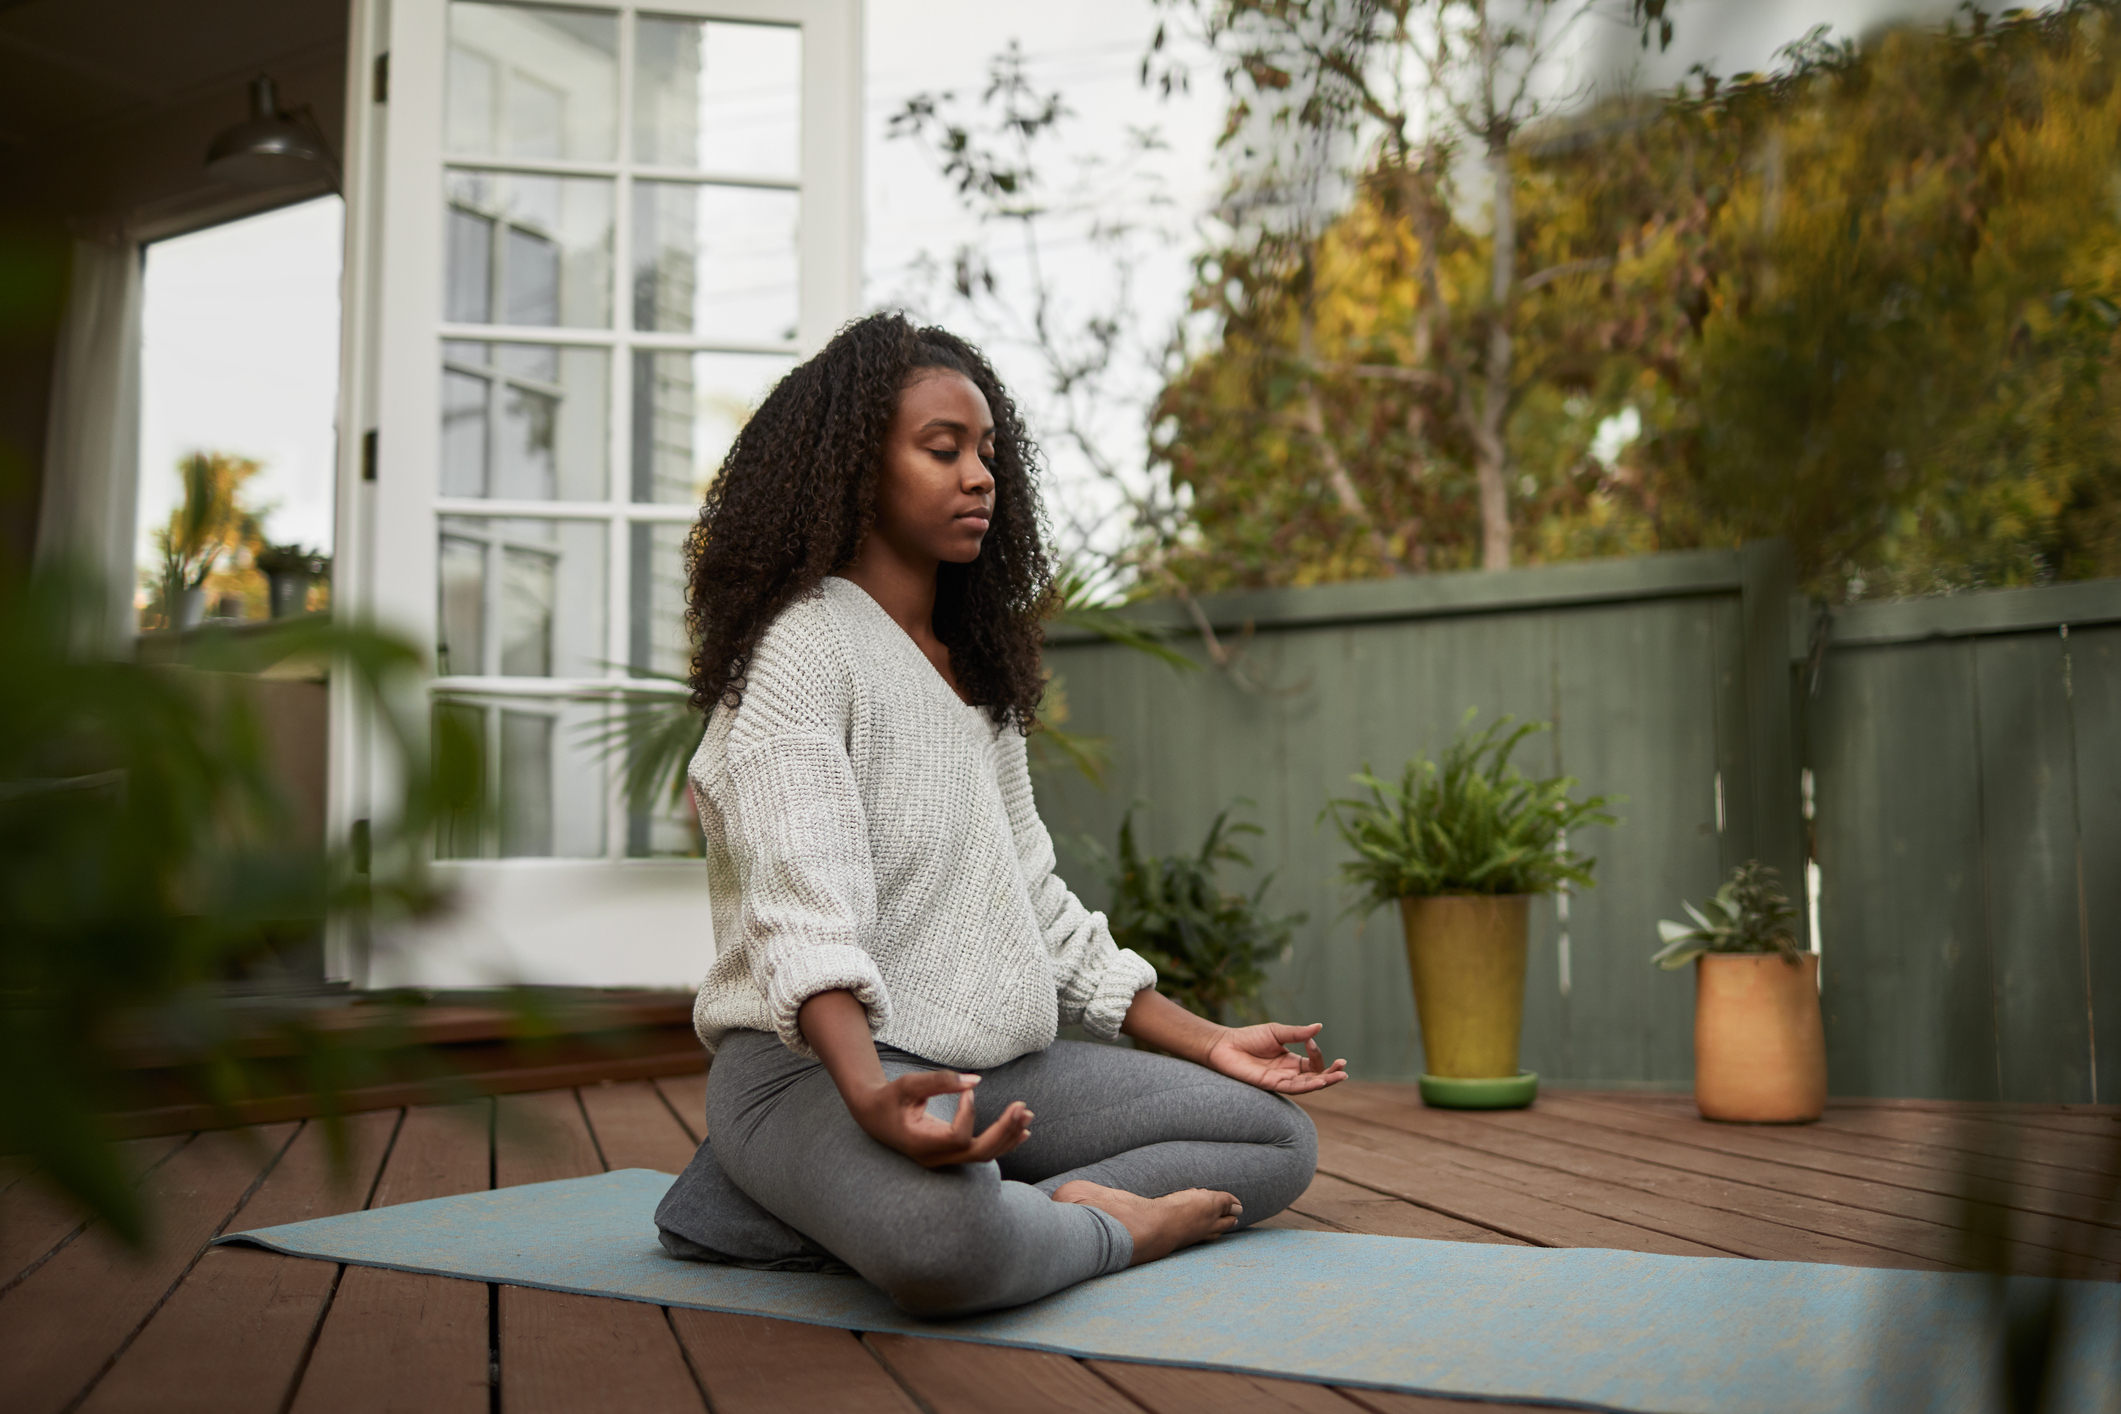 Young African American woman sitting on exercise mat outside on her patio and meditating in the lotus pose during a yoga session